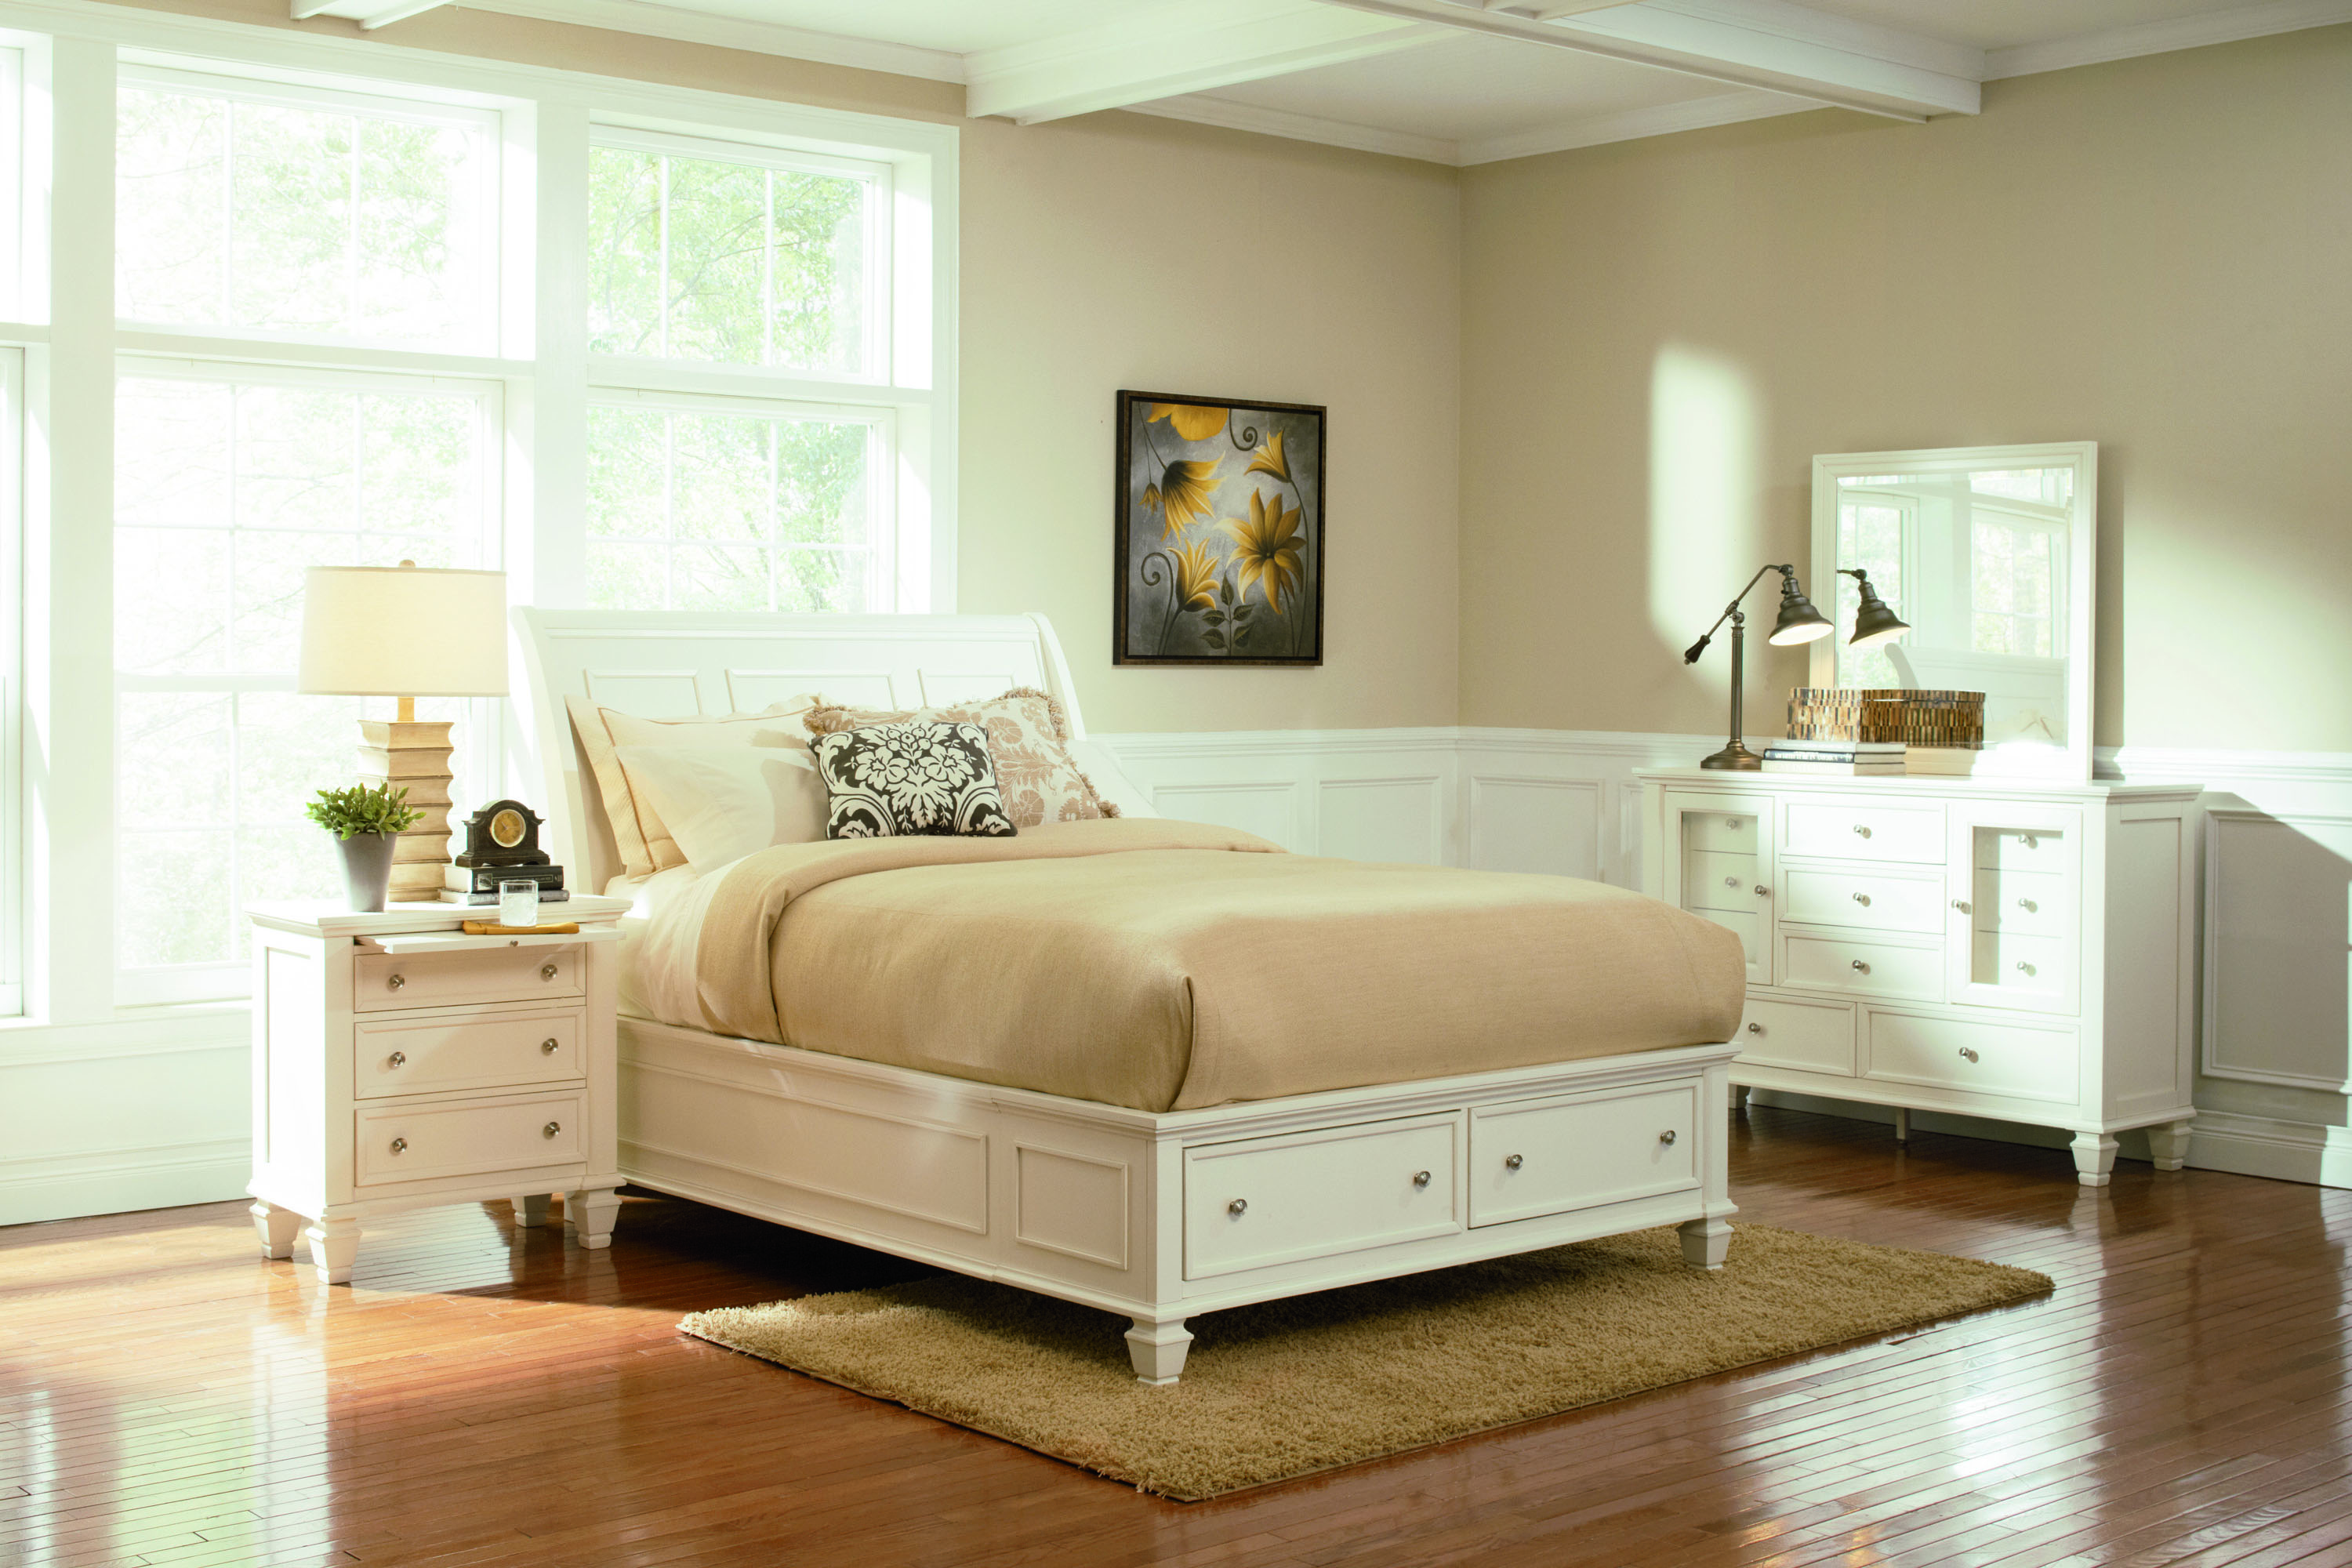 Exceptionnel Espinozau0027s Furniture, Bedroom Furniture